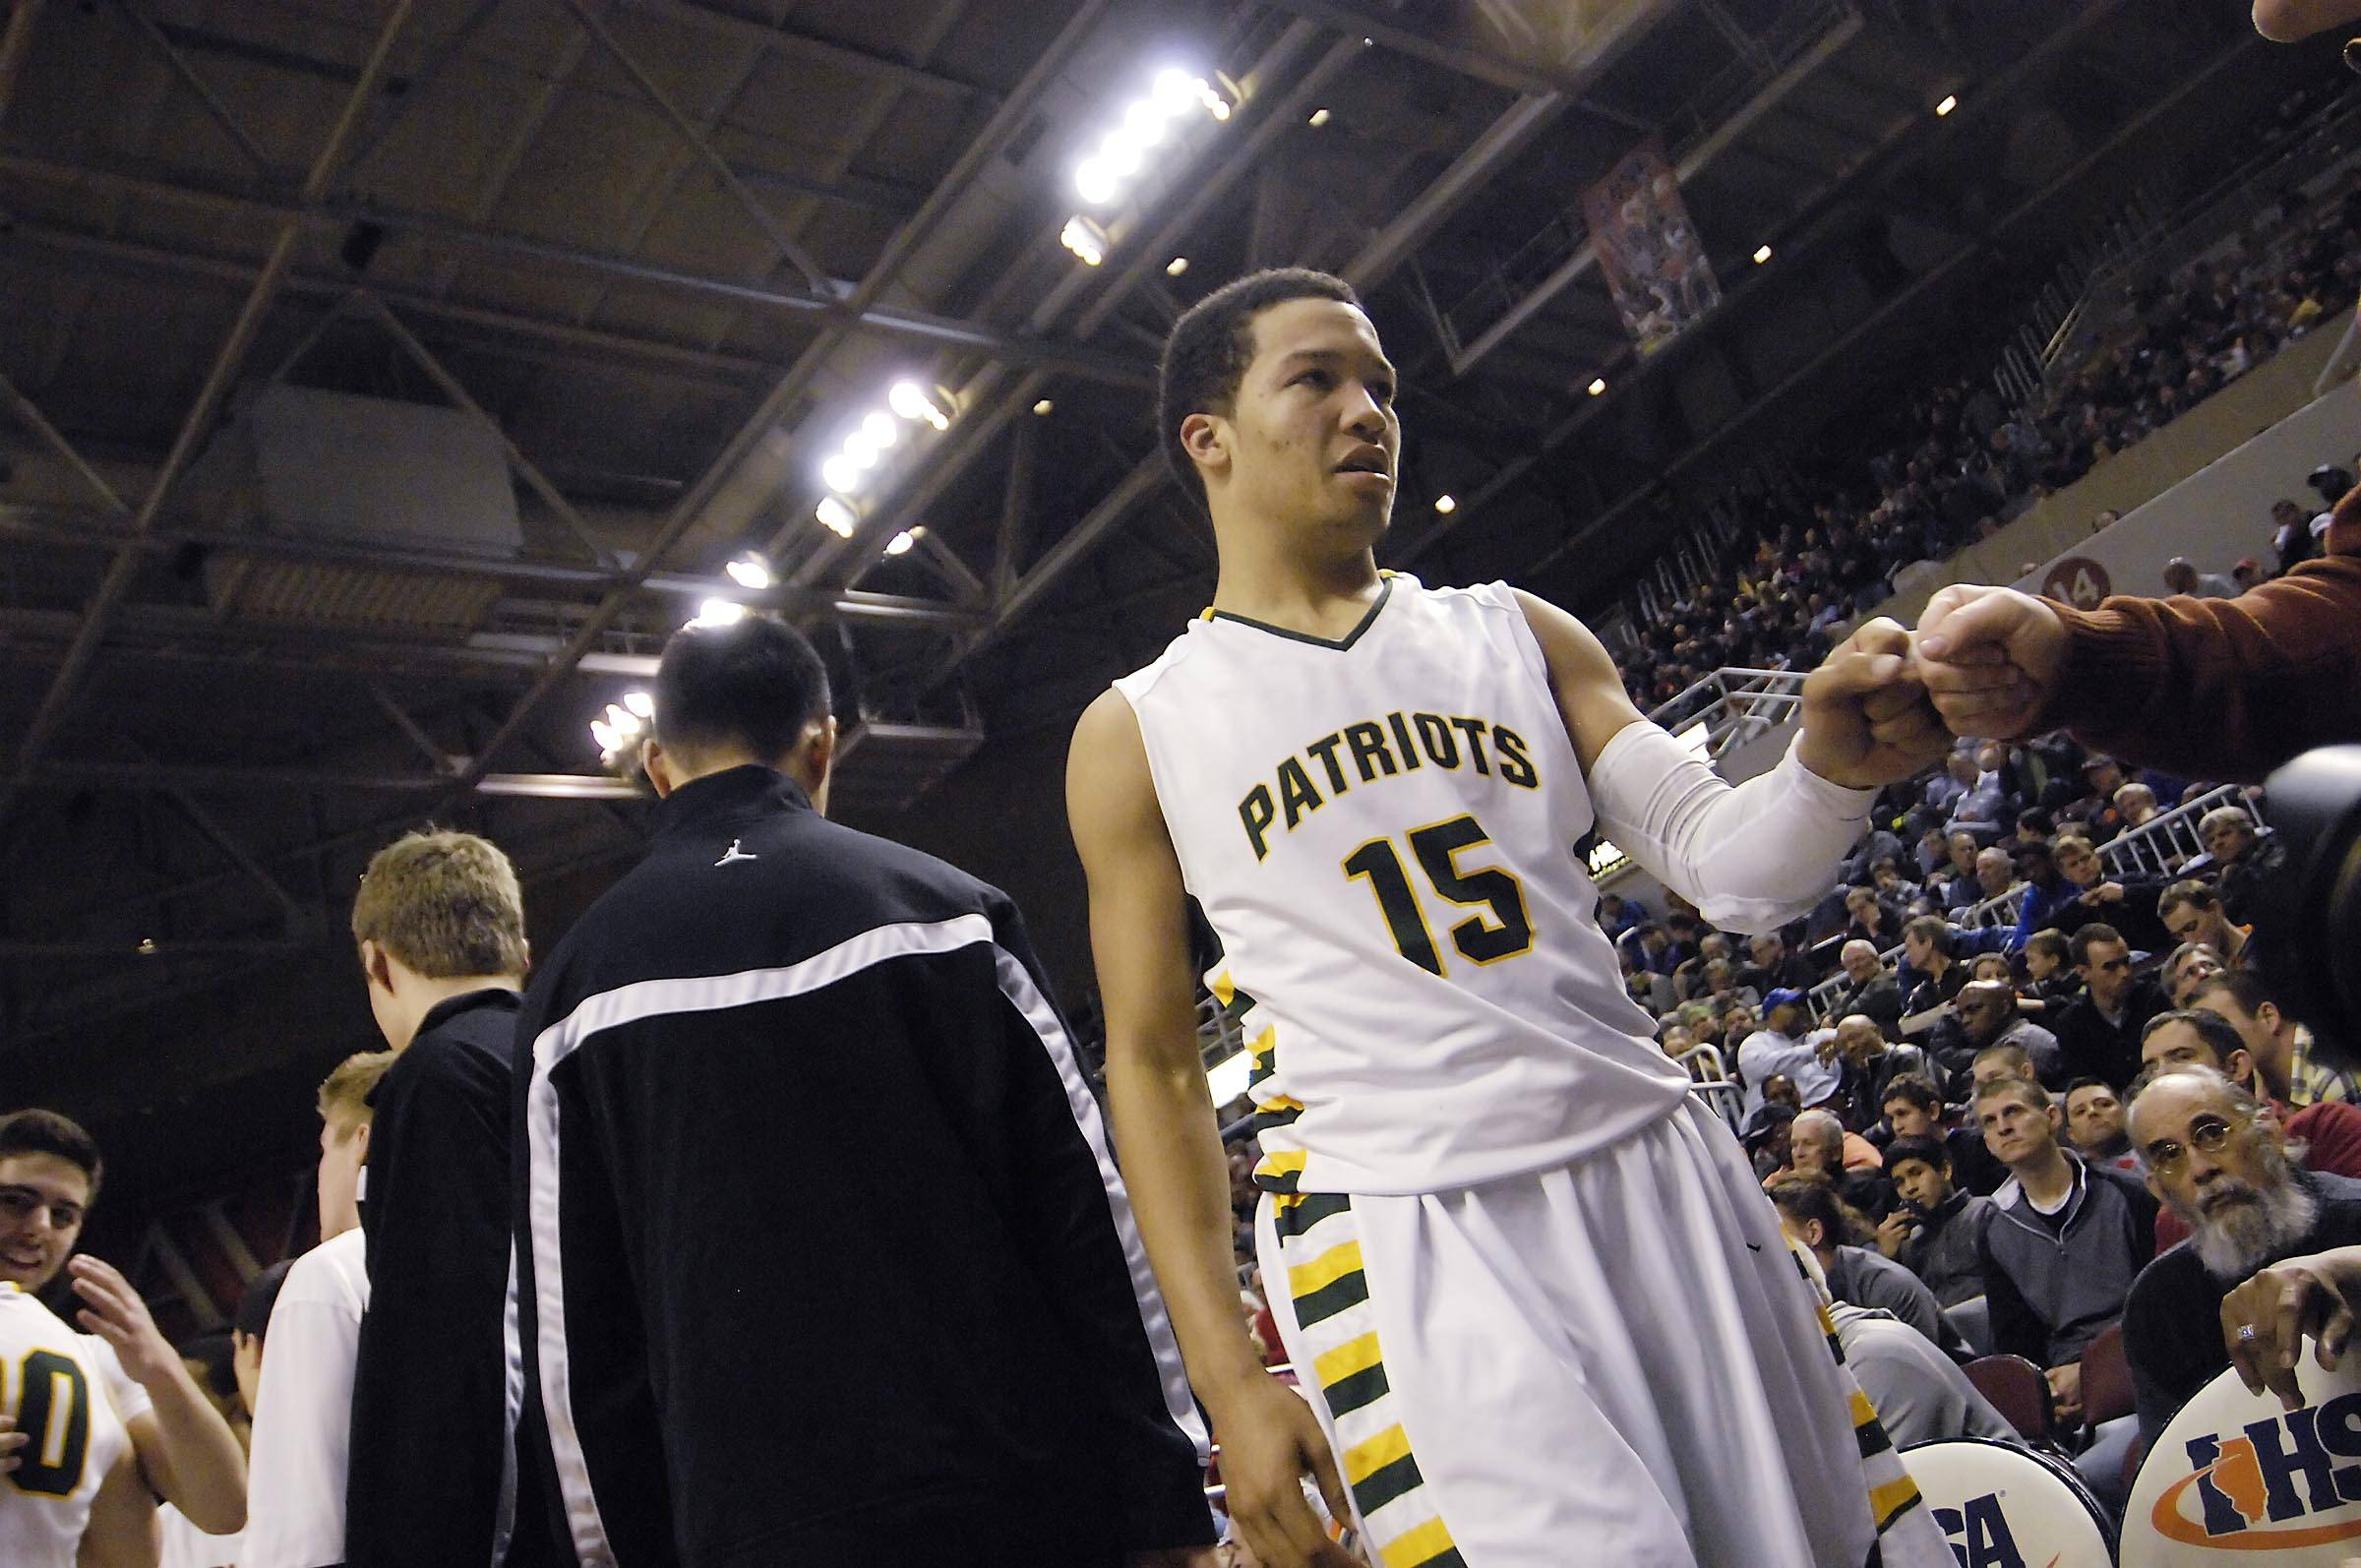 Stevenson's Jalen Brunson comes off the court in the final seconds of the Patriots win over Edwardsville in the Class 4A state third place game at Carver Arena in Peoria Saturday.